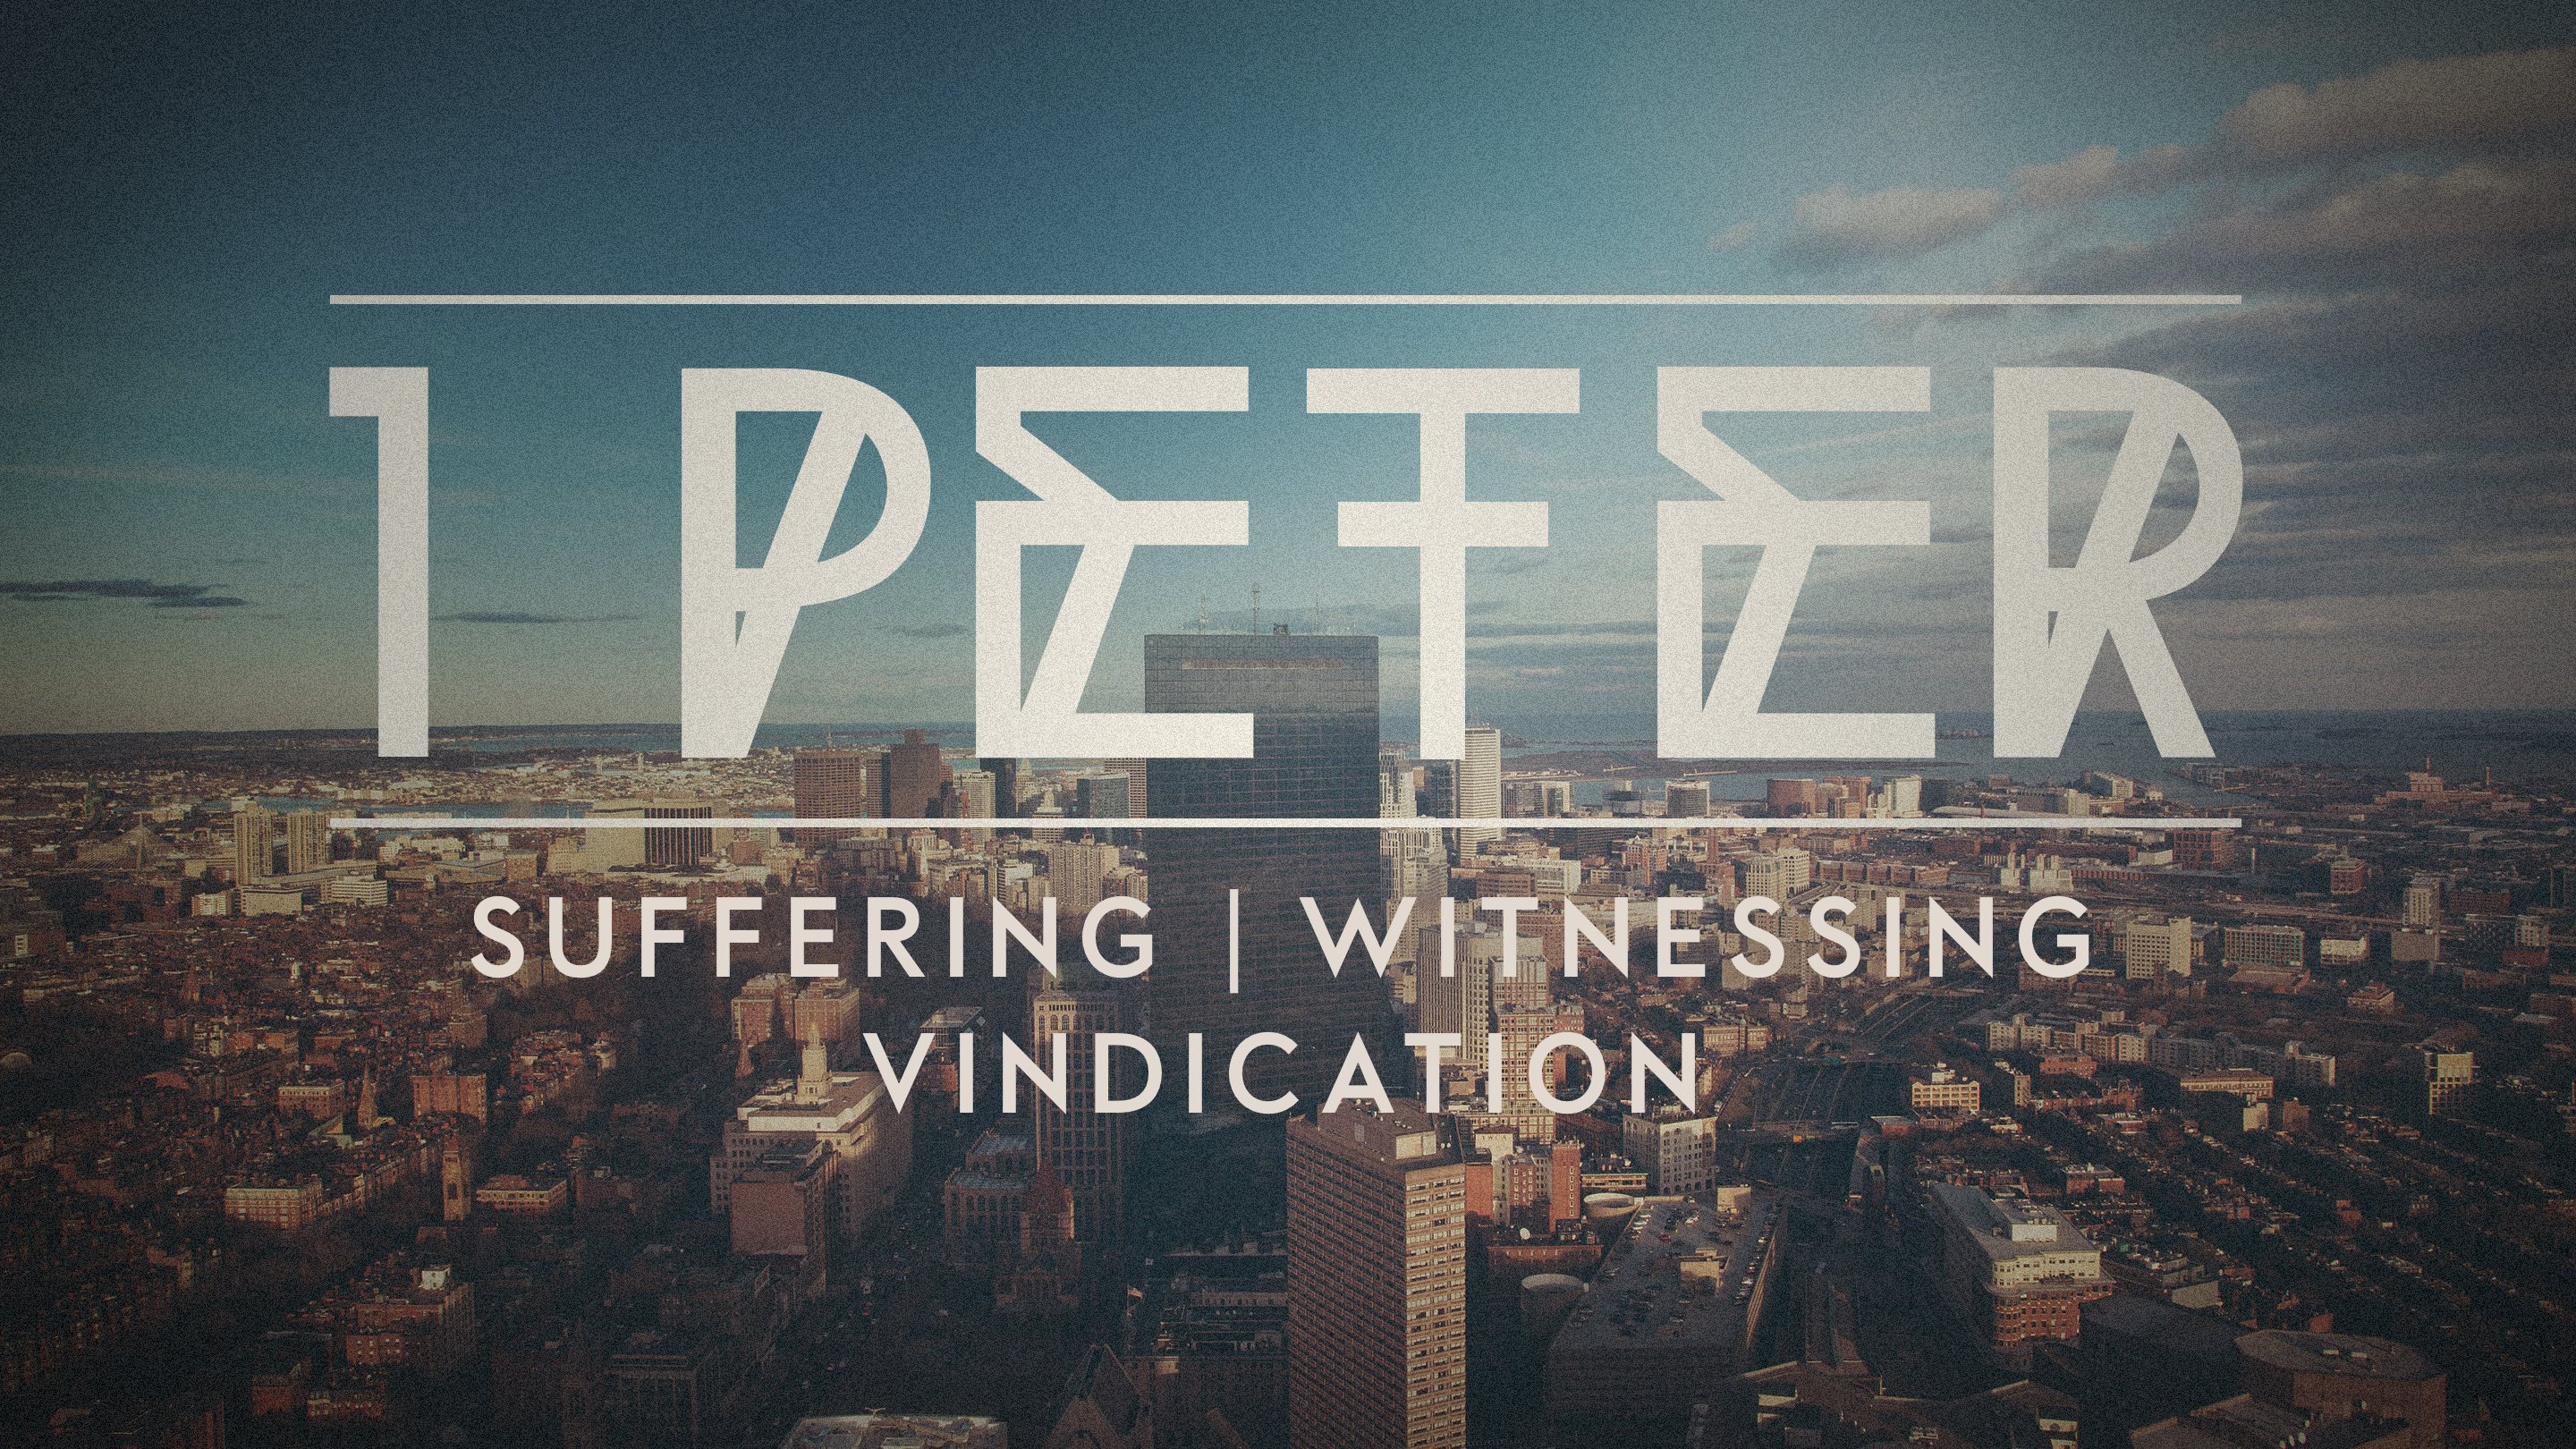 Suffering | Witnessing | Vindication